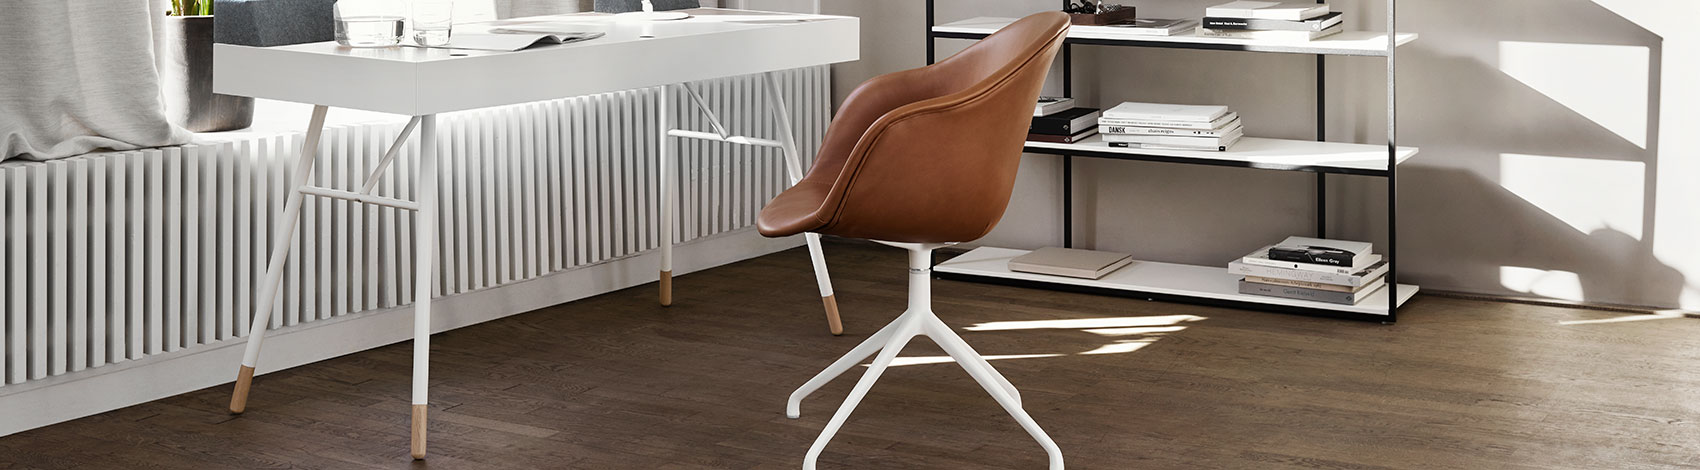 White Cupertino desk with hidden table drawers and cognac leather Adelaide chair